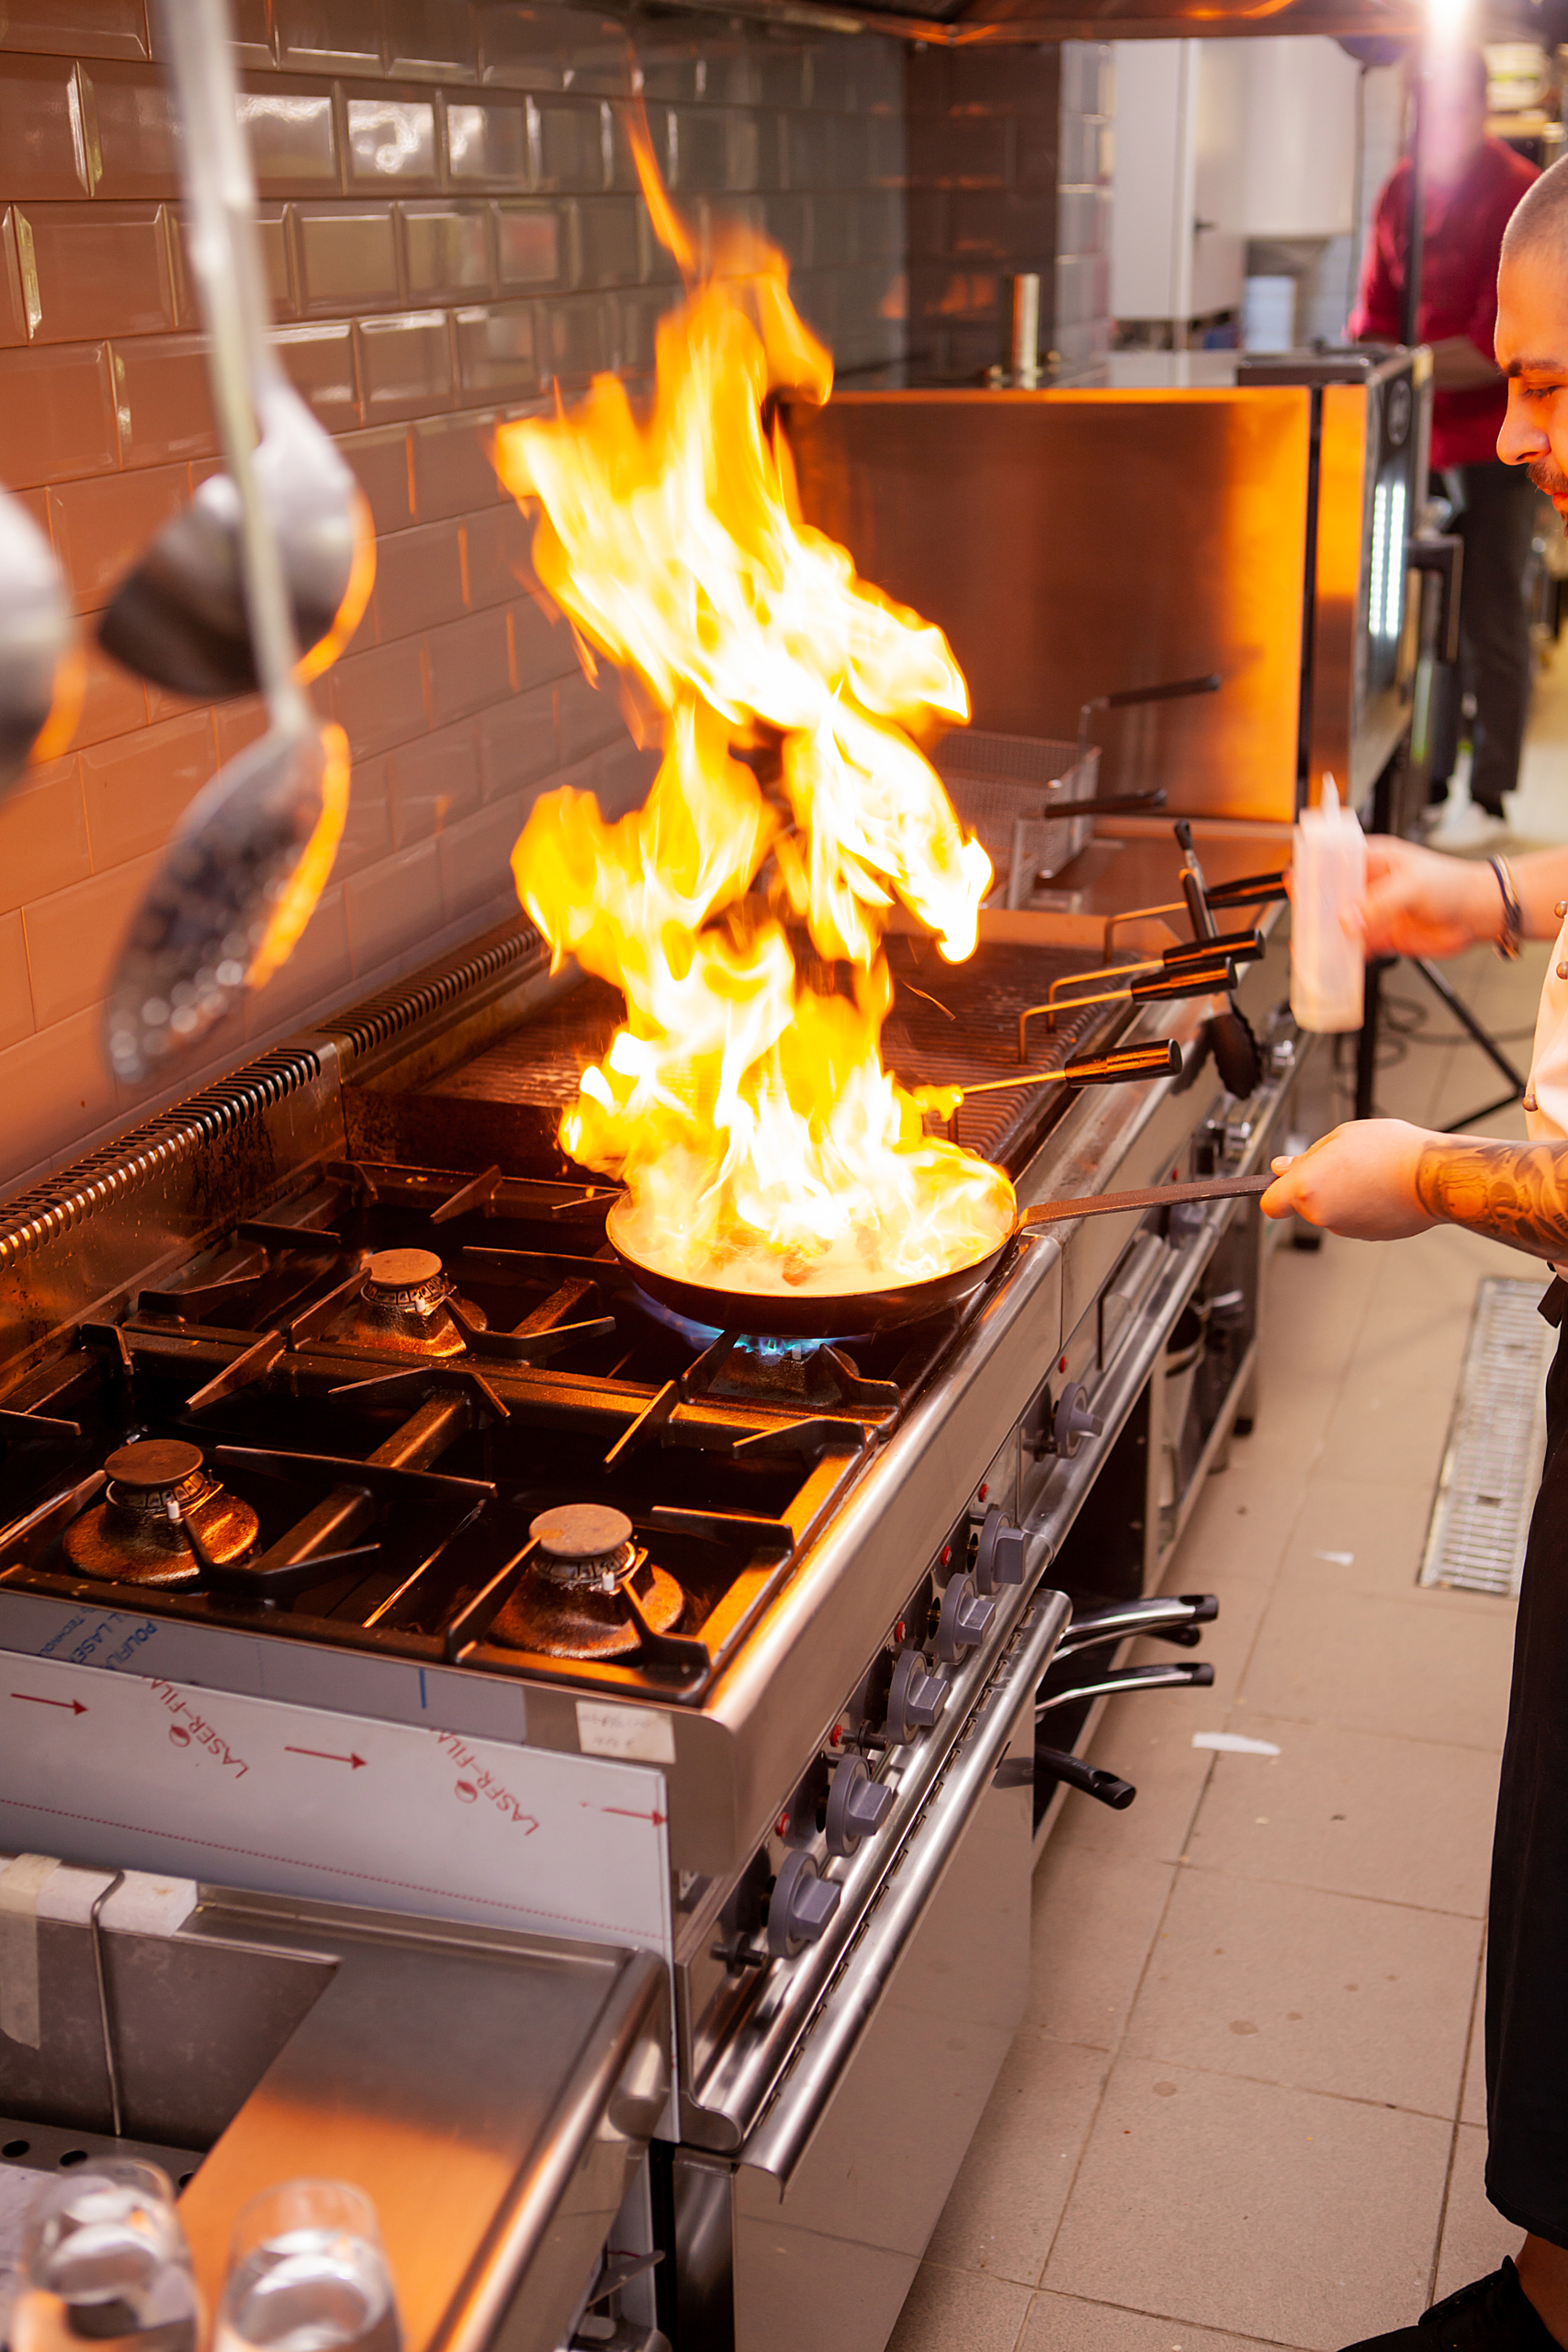 The chef prepares the dish on the stove with an open fire in the kitchen of the restaurant.